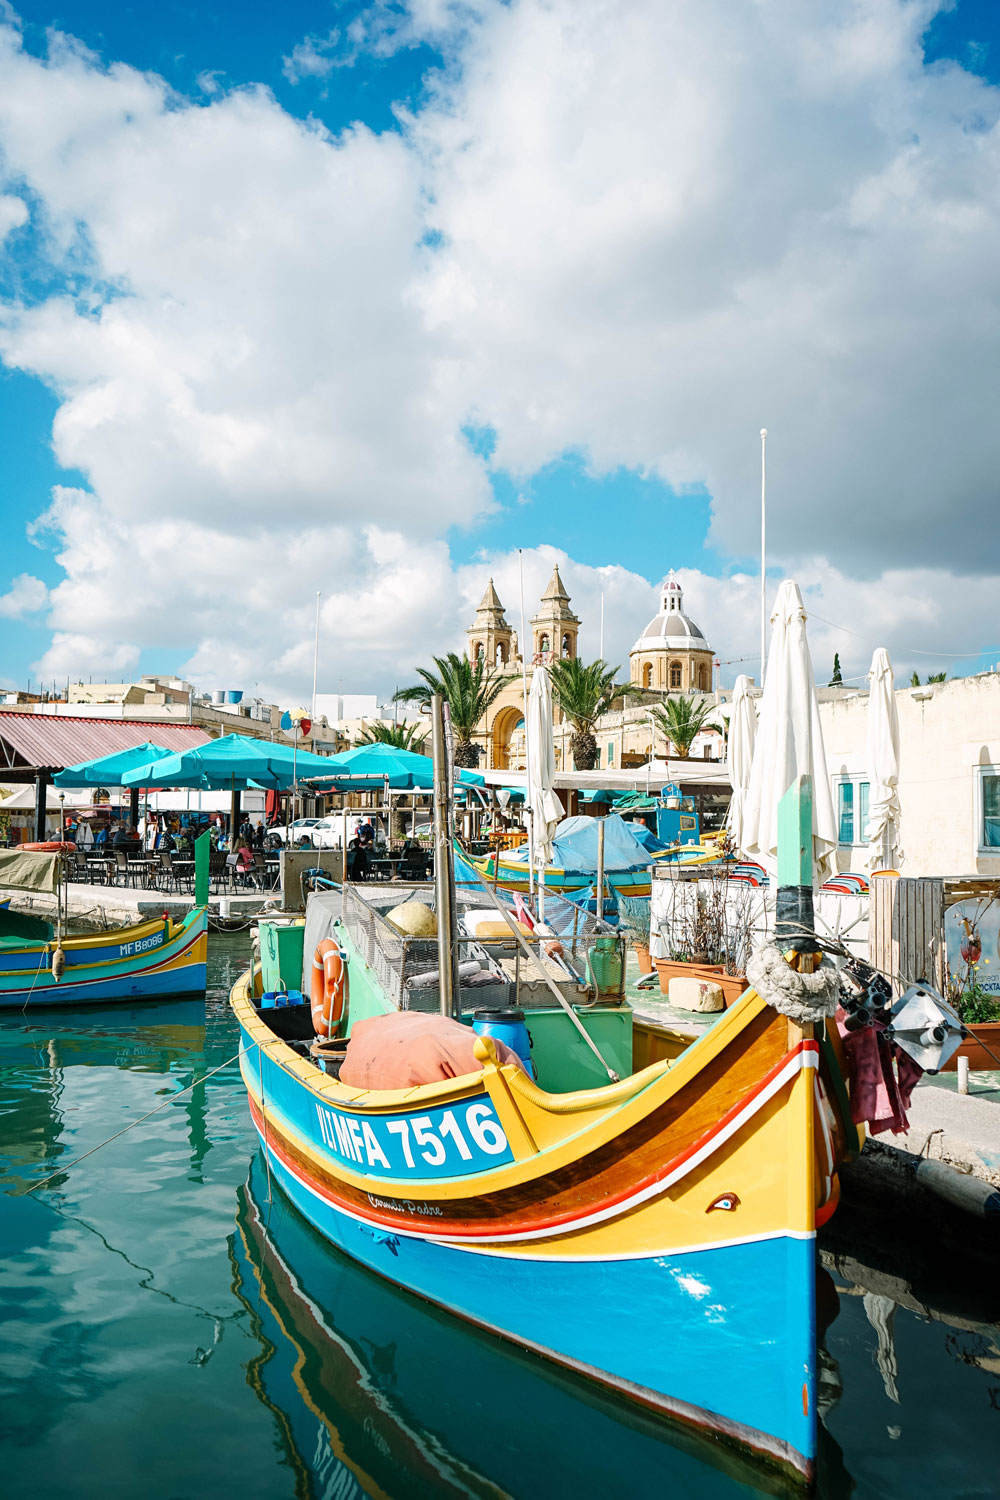 marsaxlokk guide malta by To Vogue or Bust